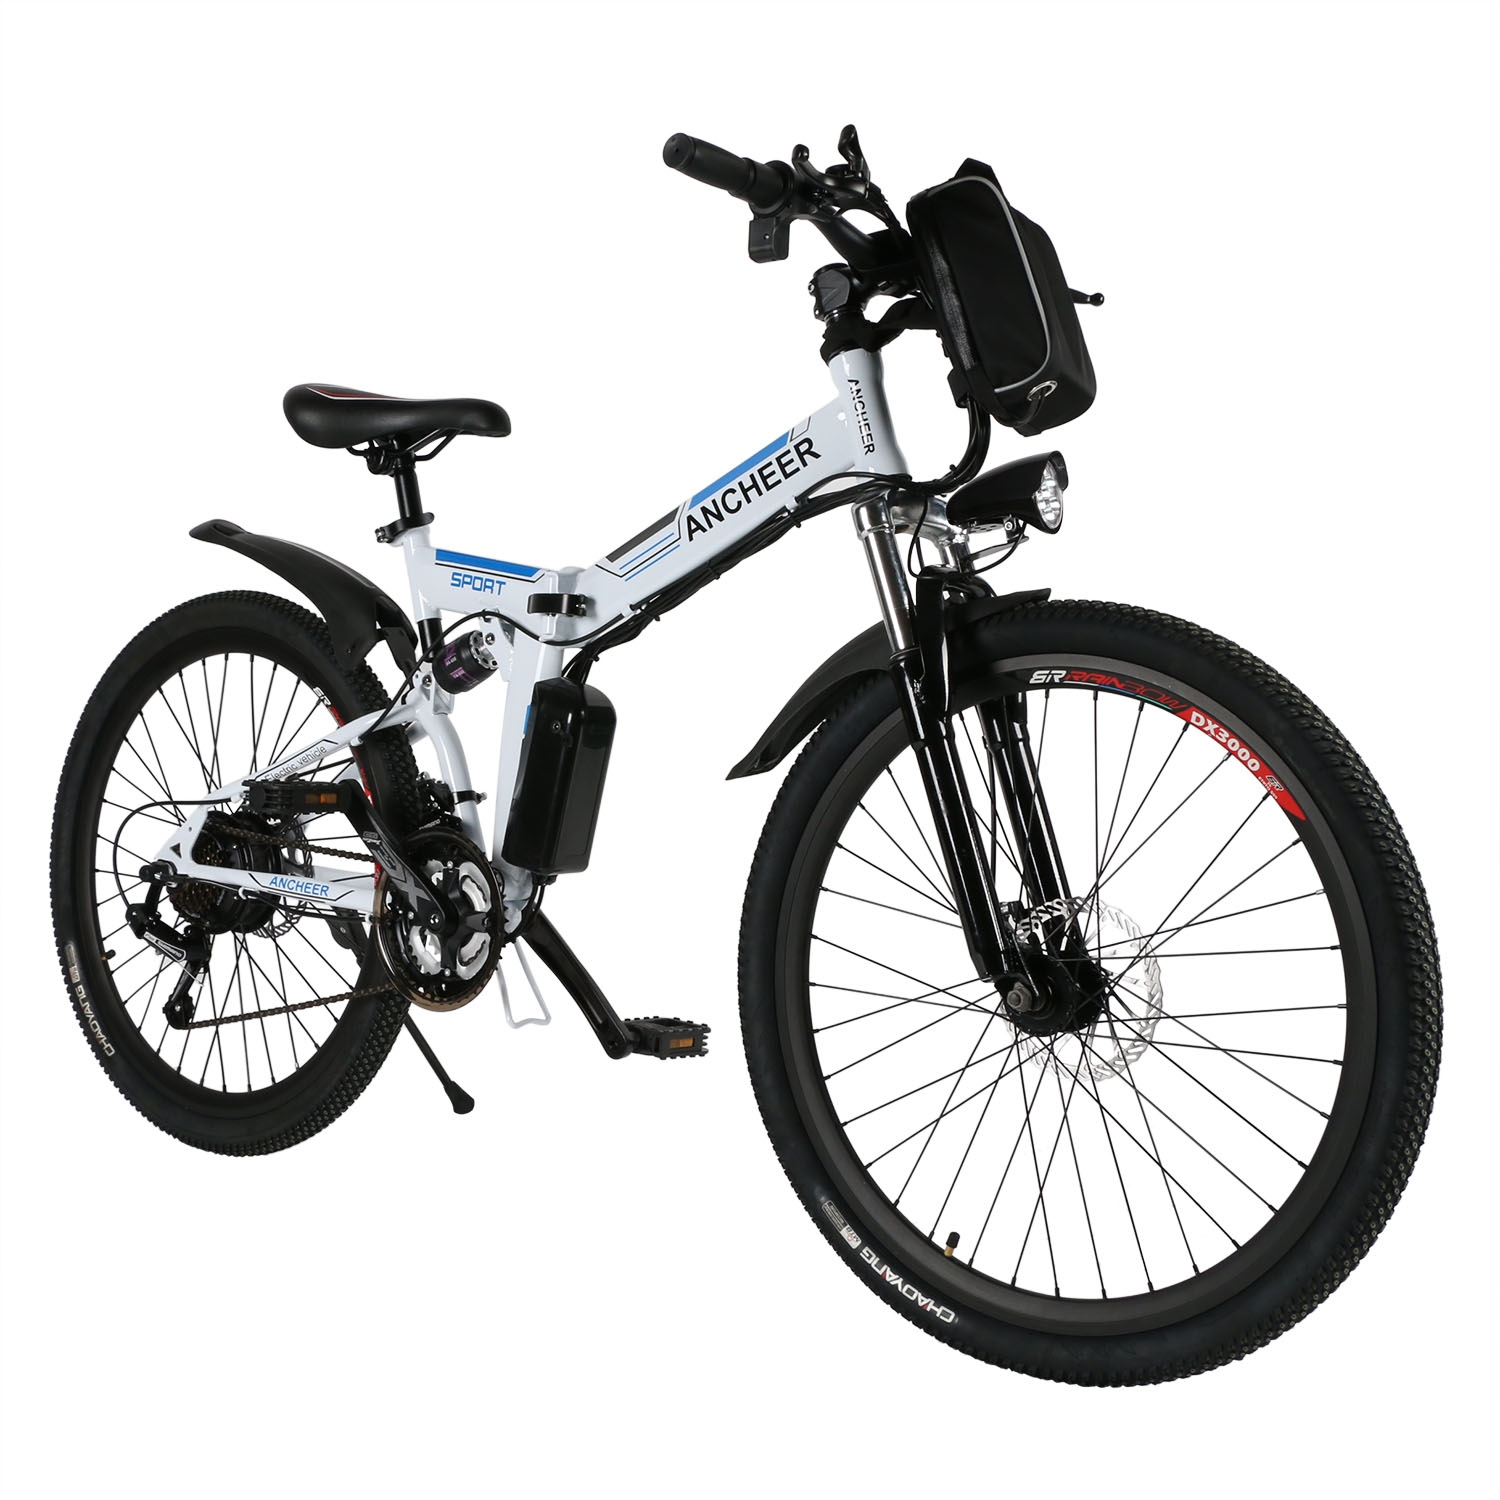 "Ancheer Foldable Electric Mountain Bike 26"" with 36V 8AH Large Capacity Lithium-Ion Battery, Electric Bicycle with 250W Brushless Motor, Premium Full Suspension and Shimano Gear"